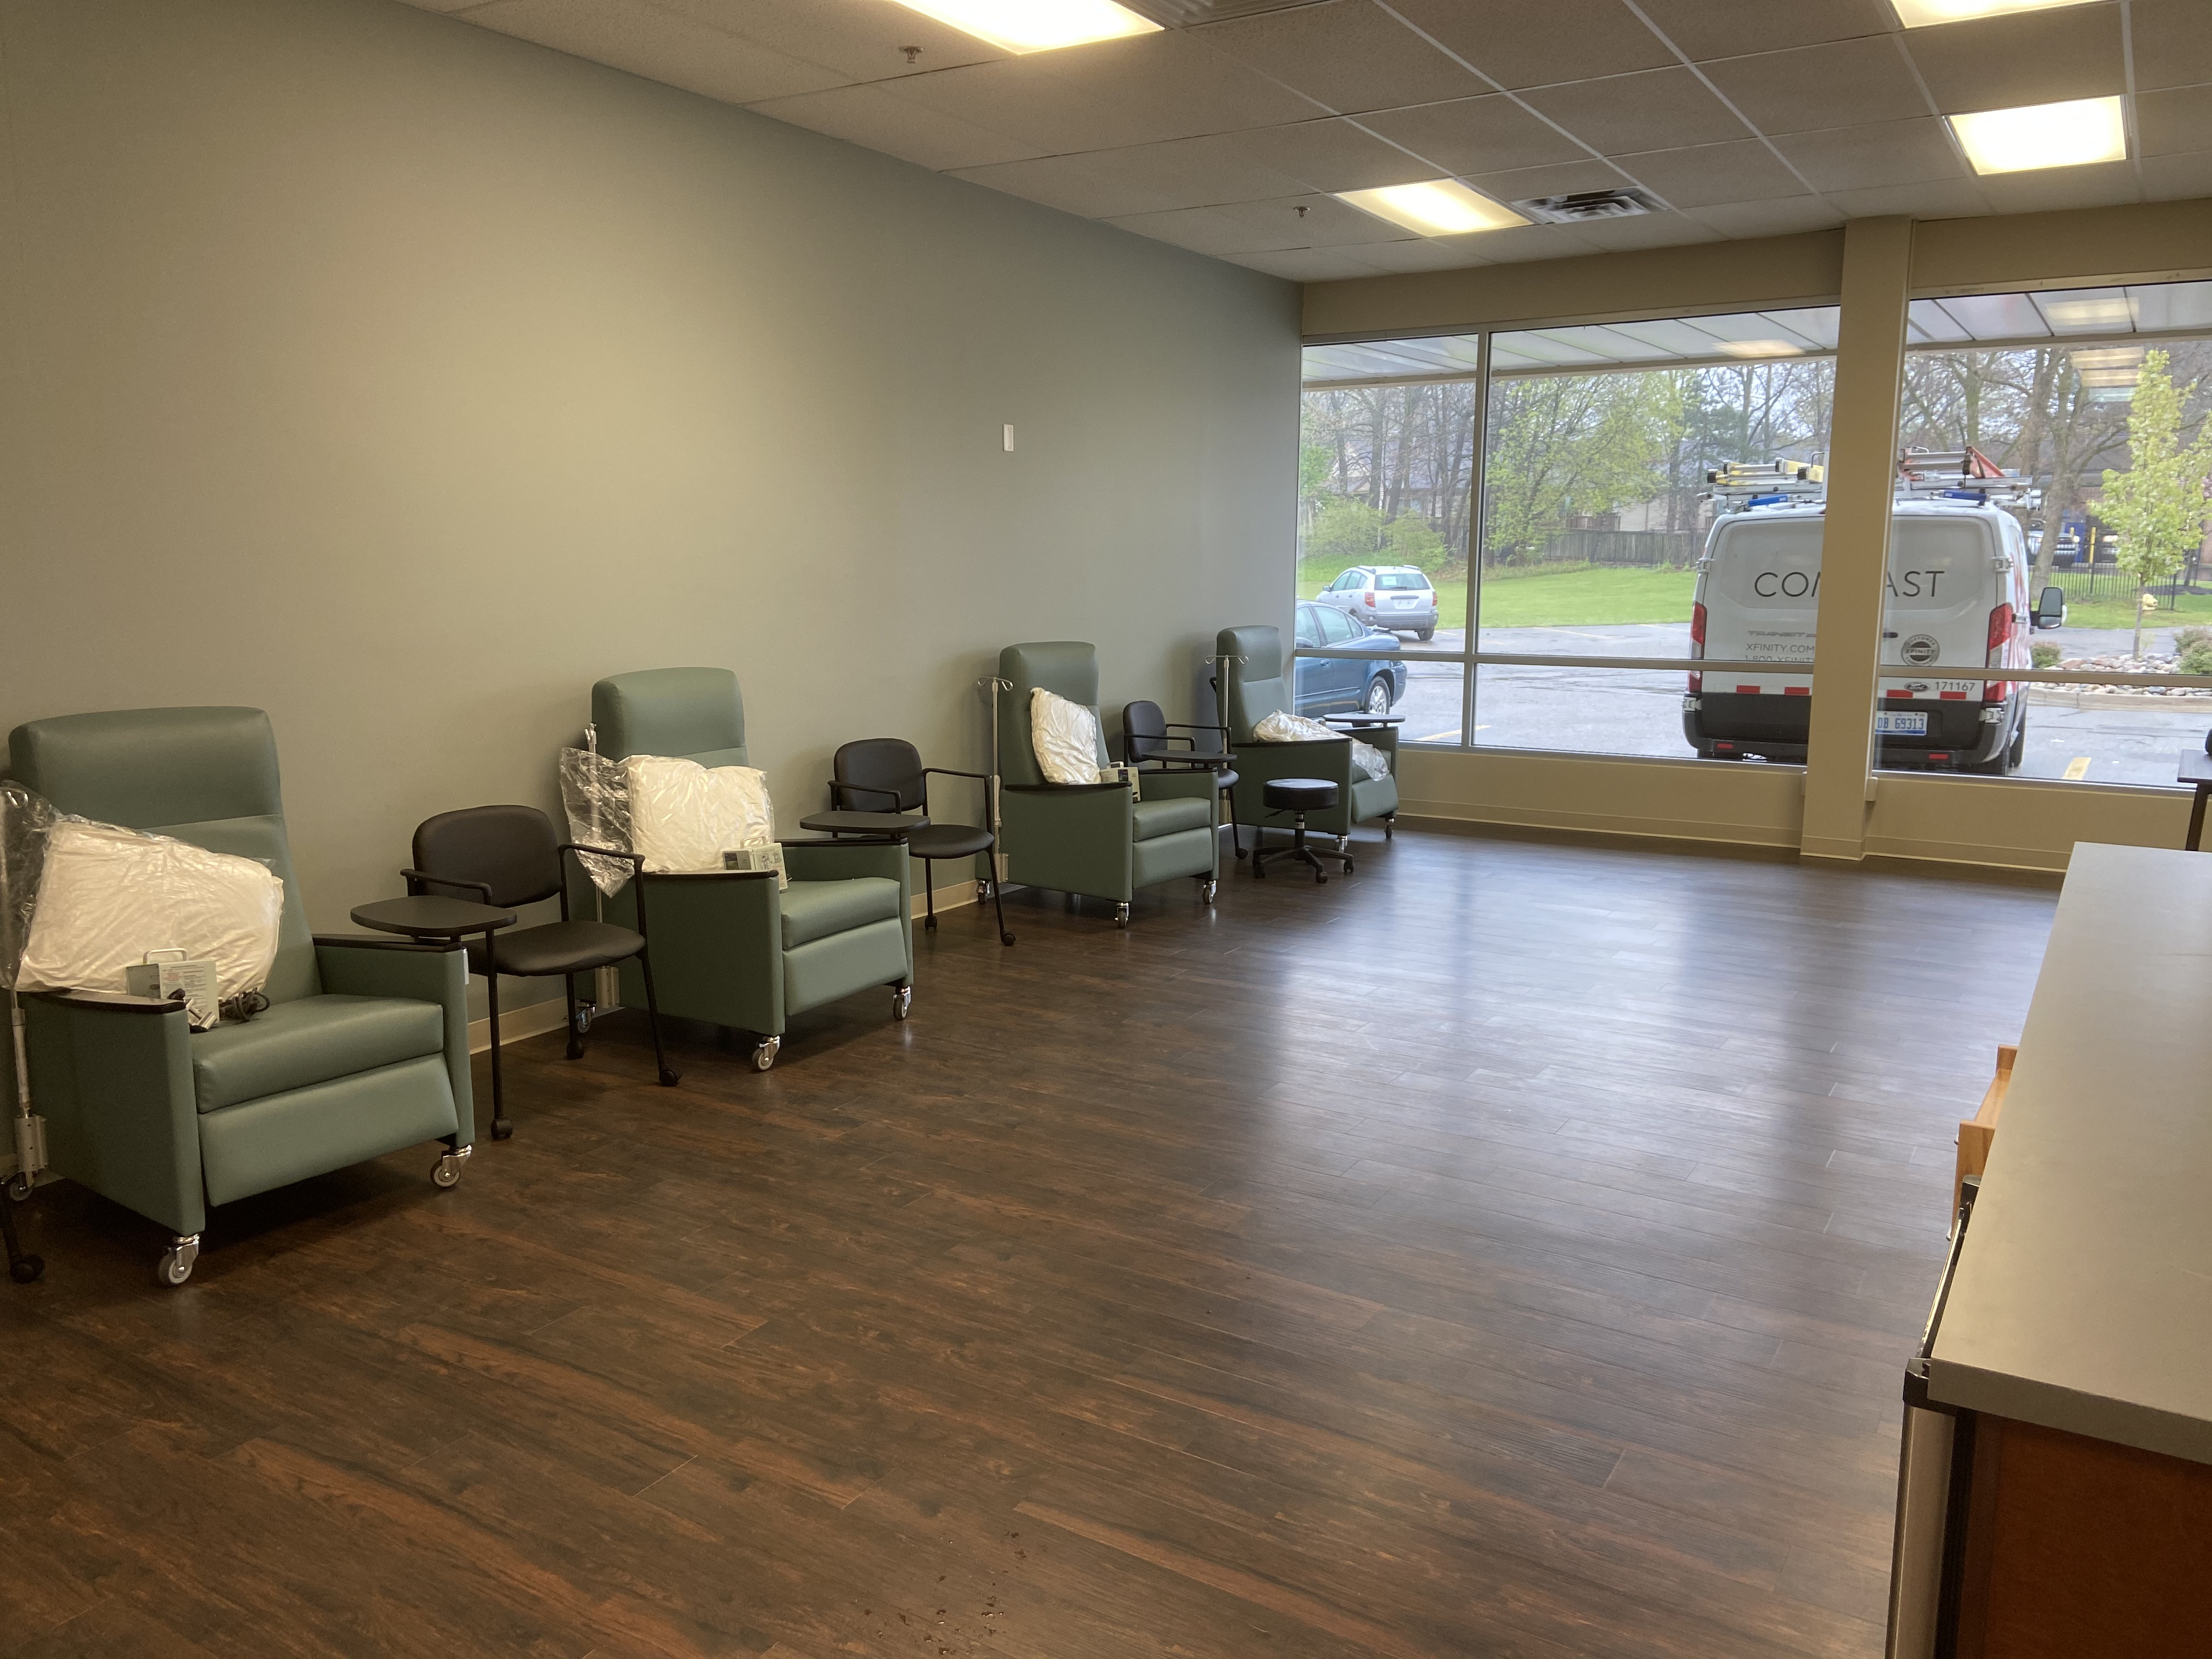 Metro Infusion Center - Wyoming, MI 49519 - (877)448-3627 | ShowMeLocal.com